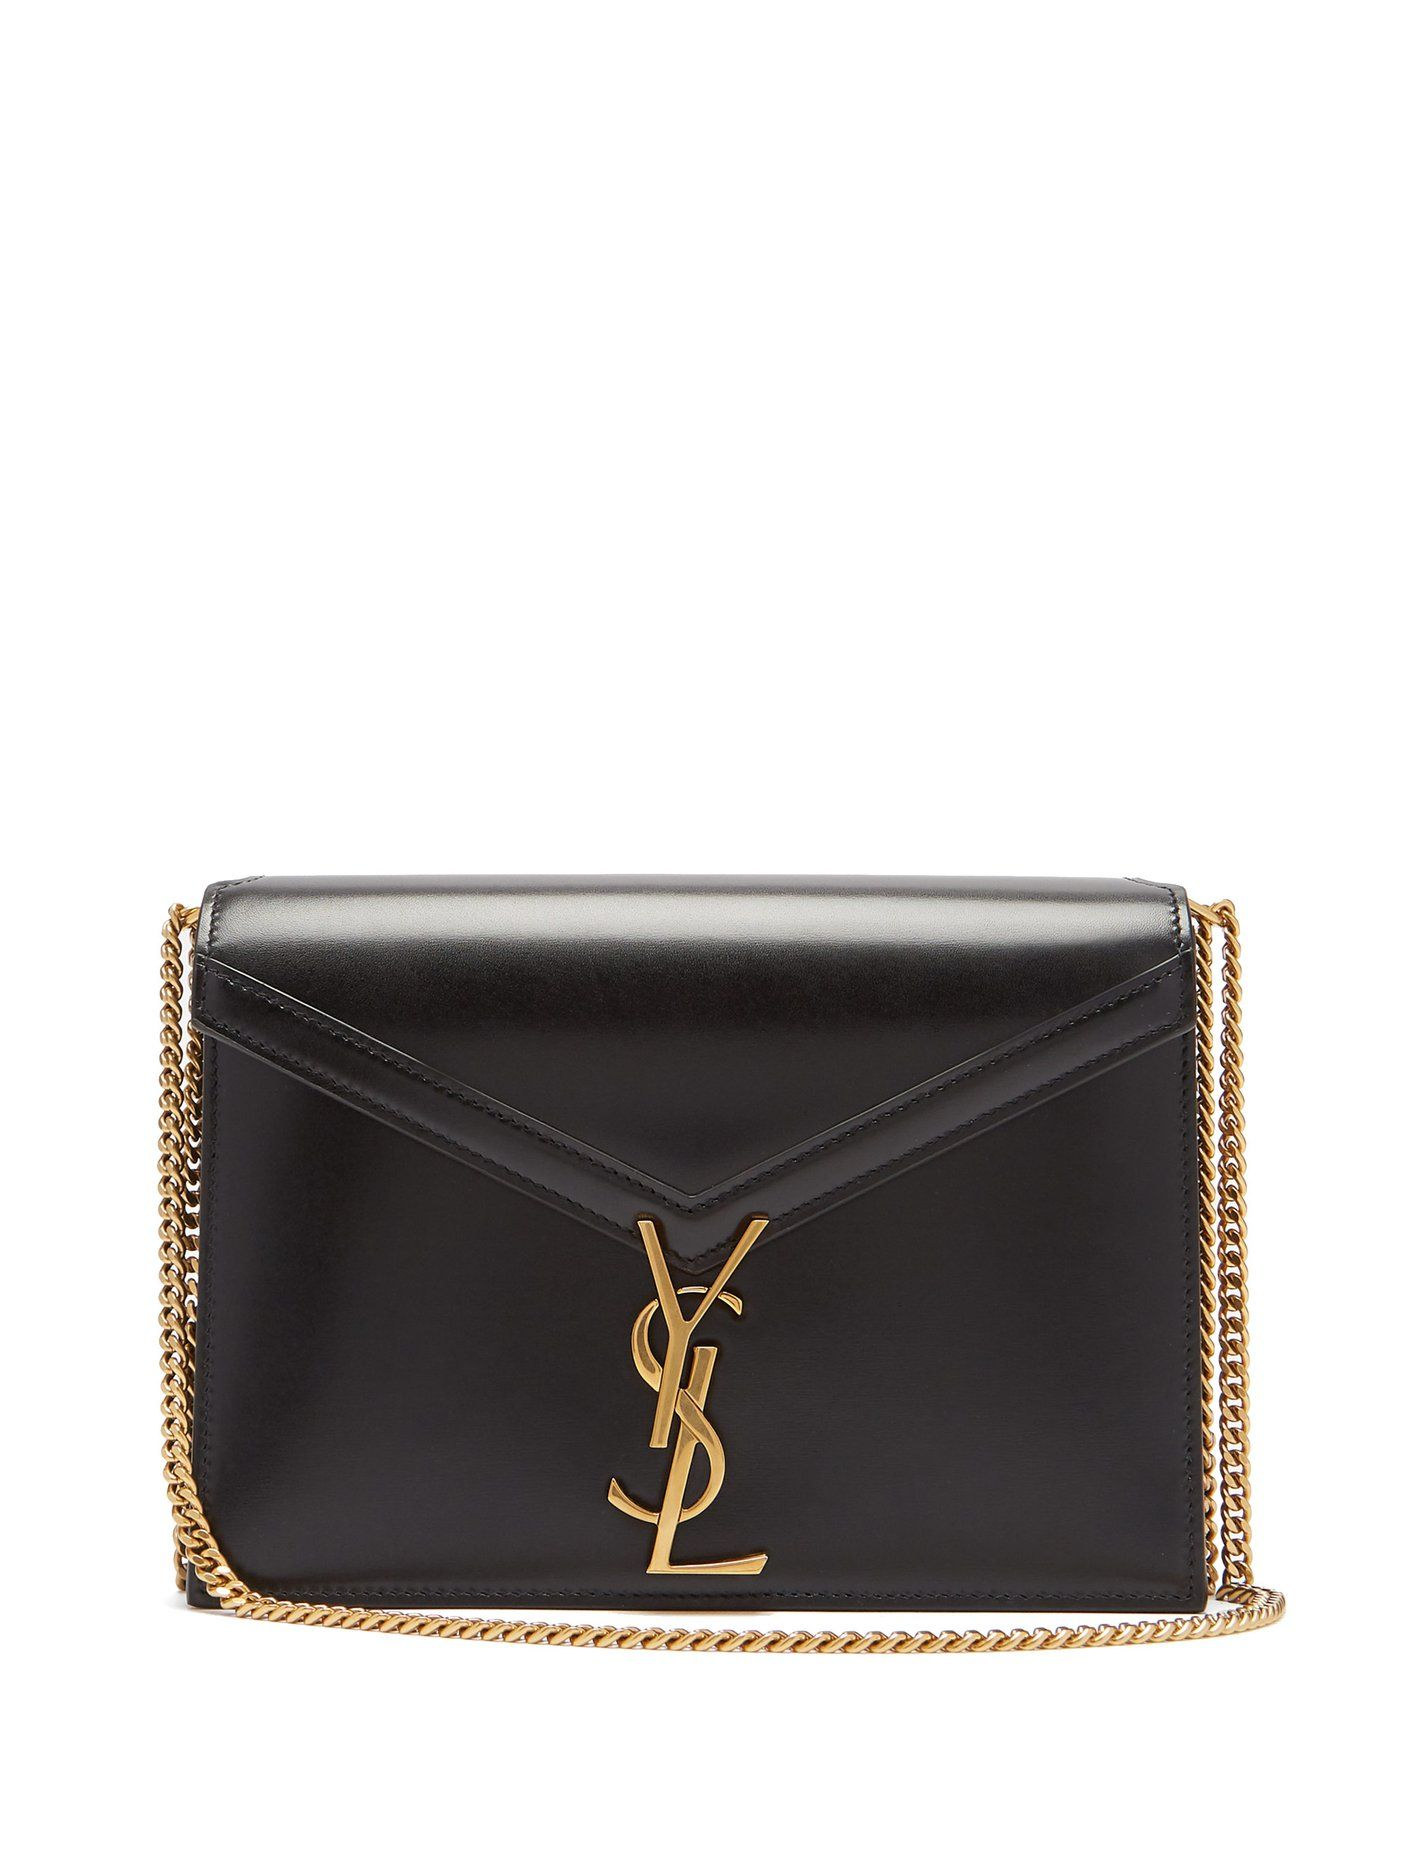 Cassandra monogram leather cross,body bag